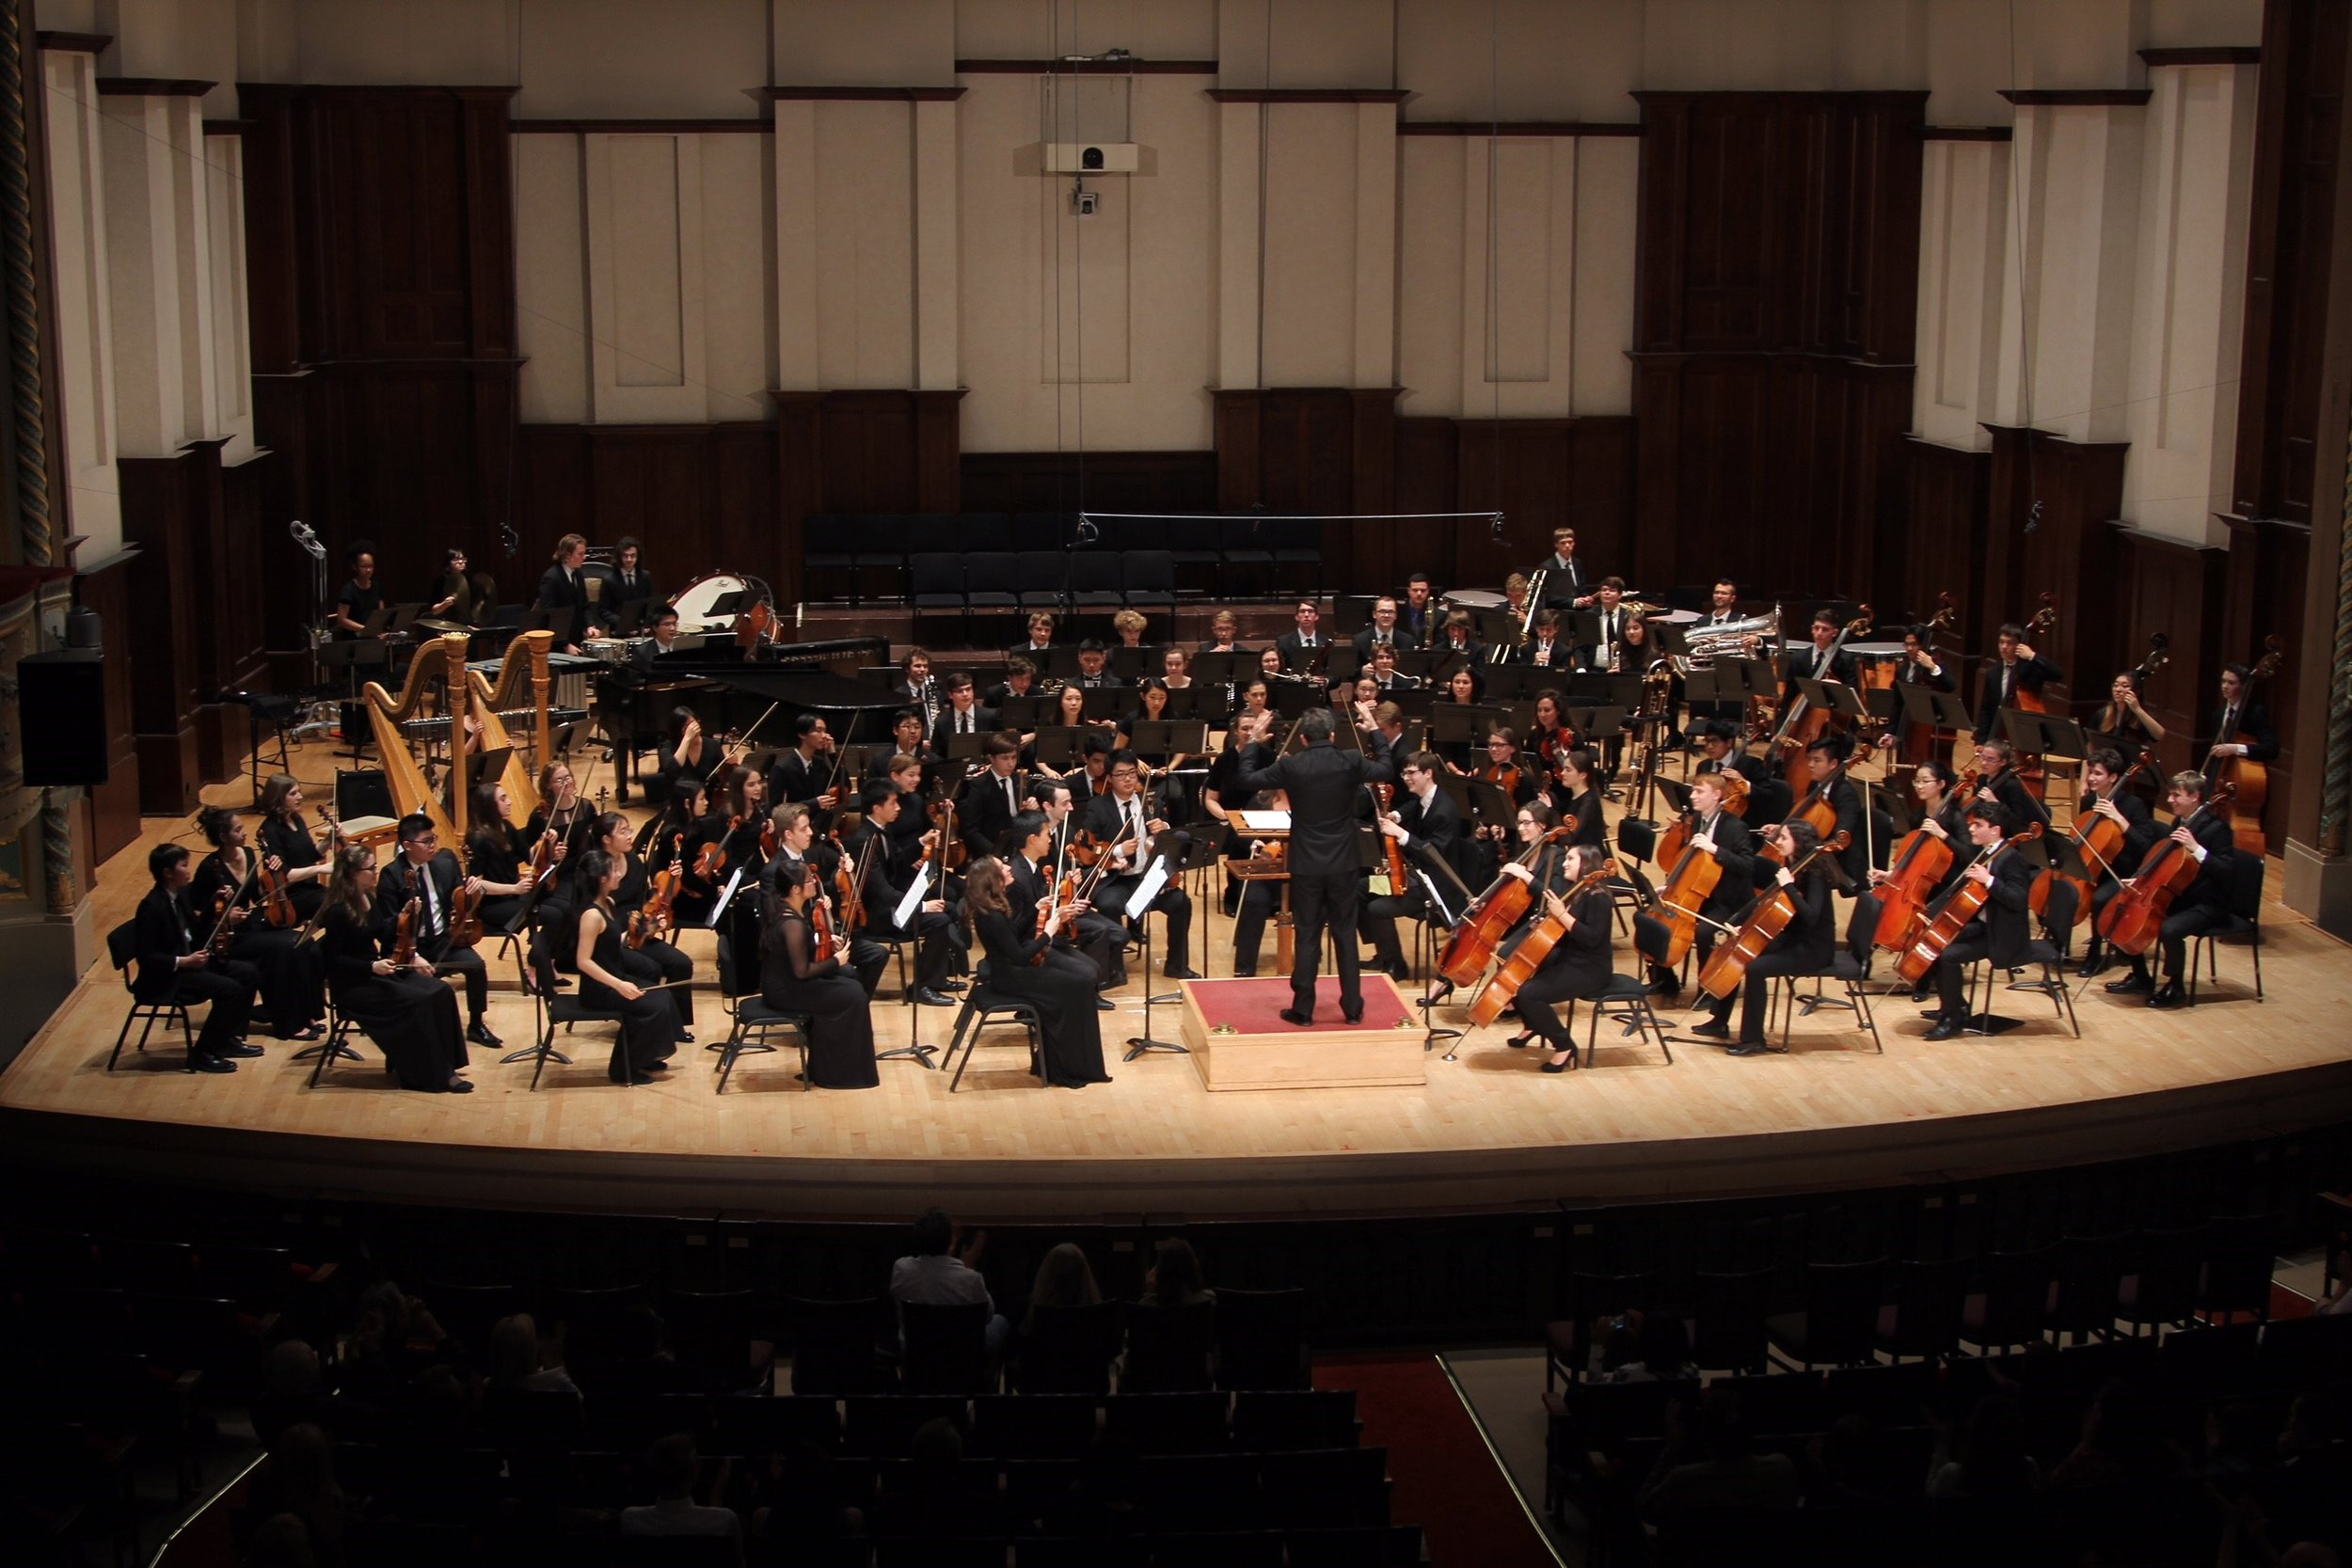 Detroit Symphony Youth orchestra - For Classical Strings, Winds, Brass, and Percussion